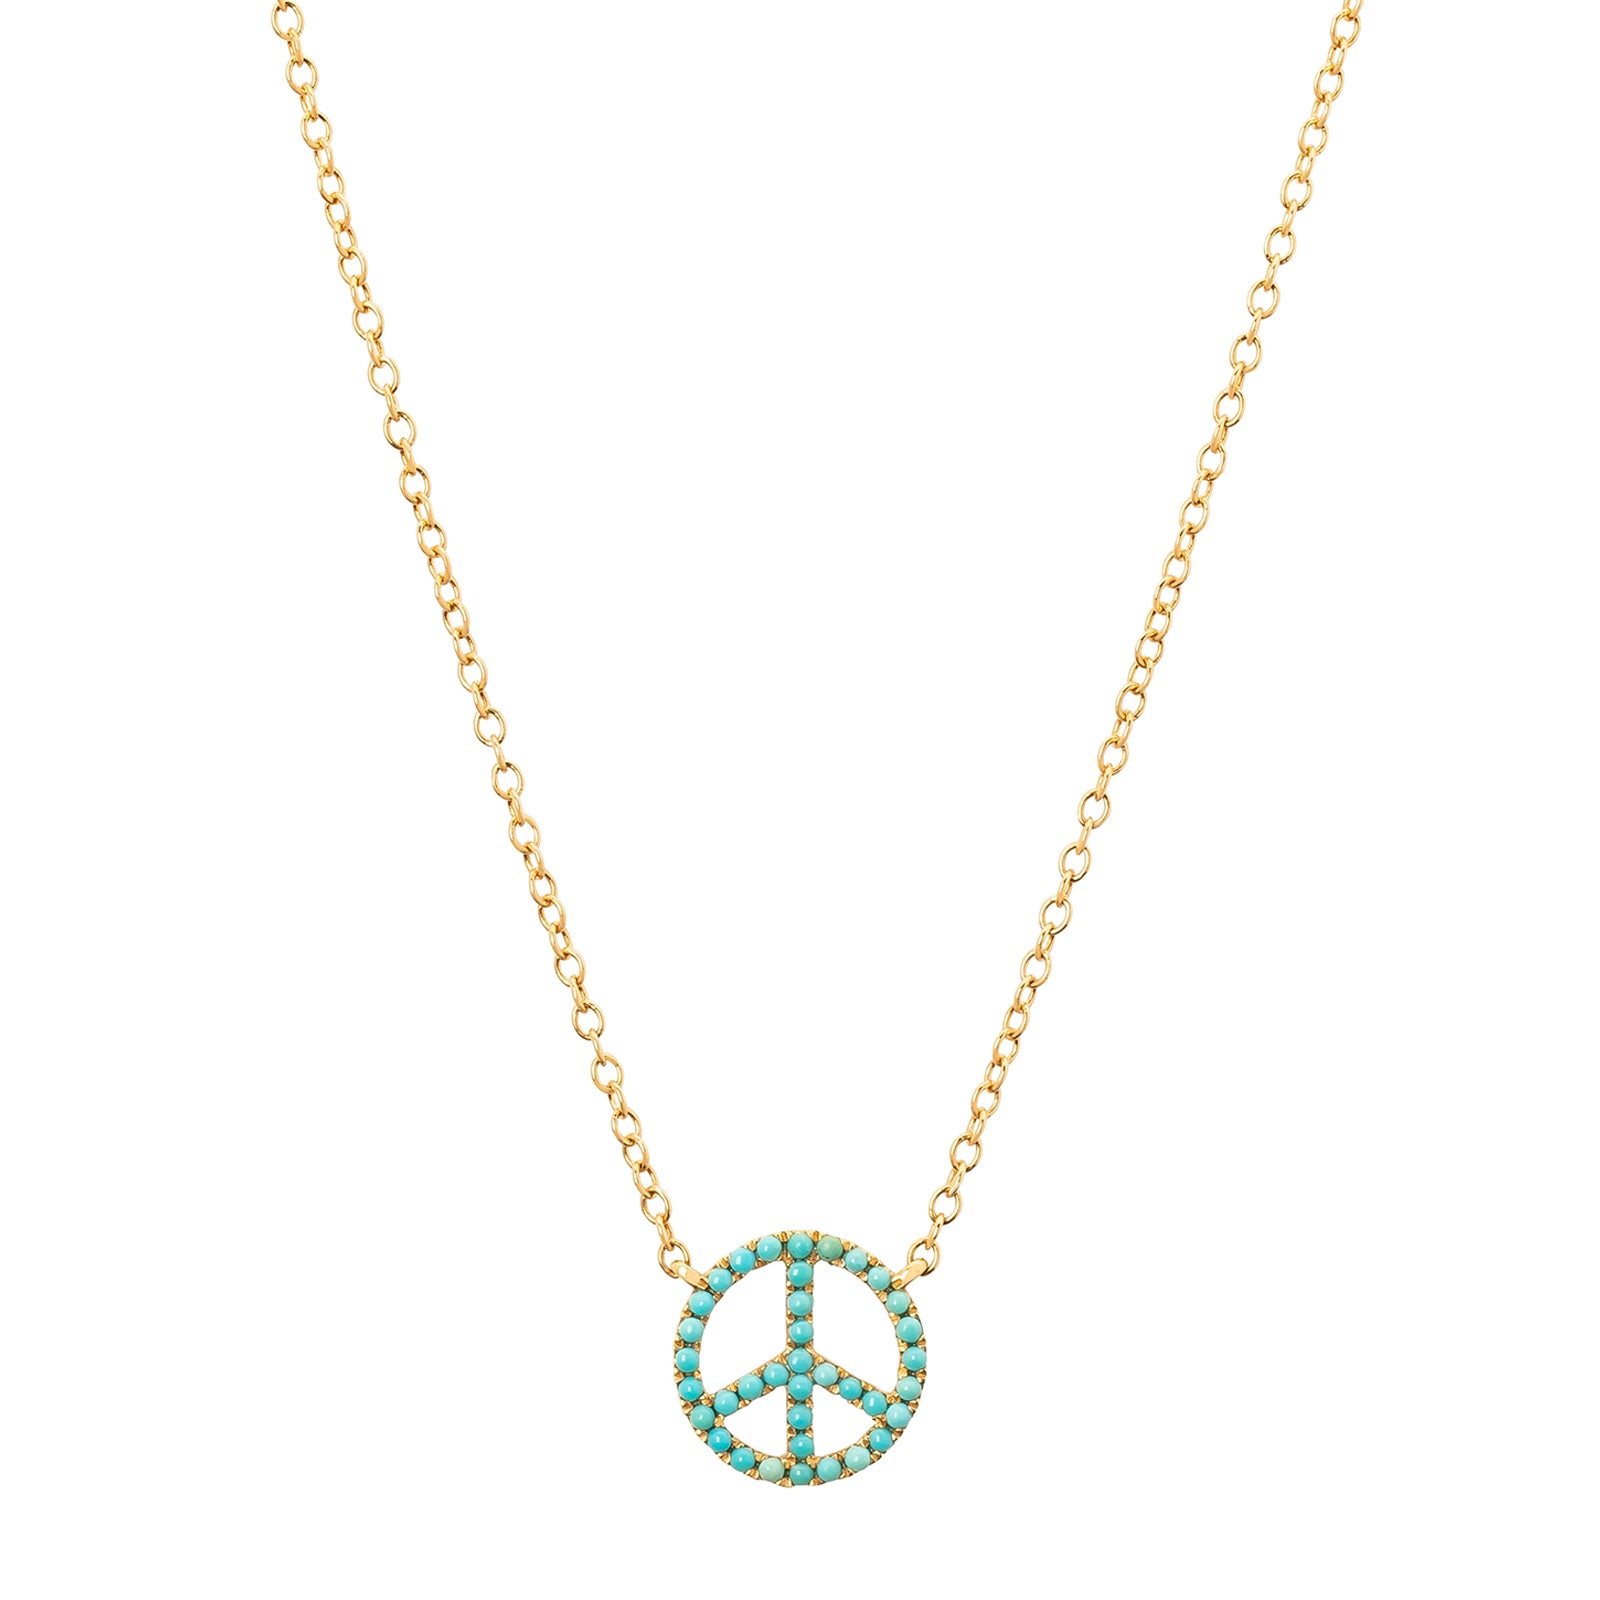 Rosa de la Cruz Peace Charm Necklace - Turquoise - Necklaces - Broken English Jewelry